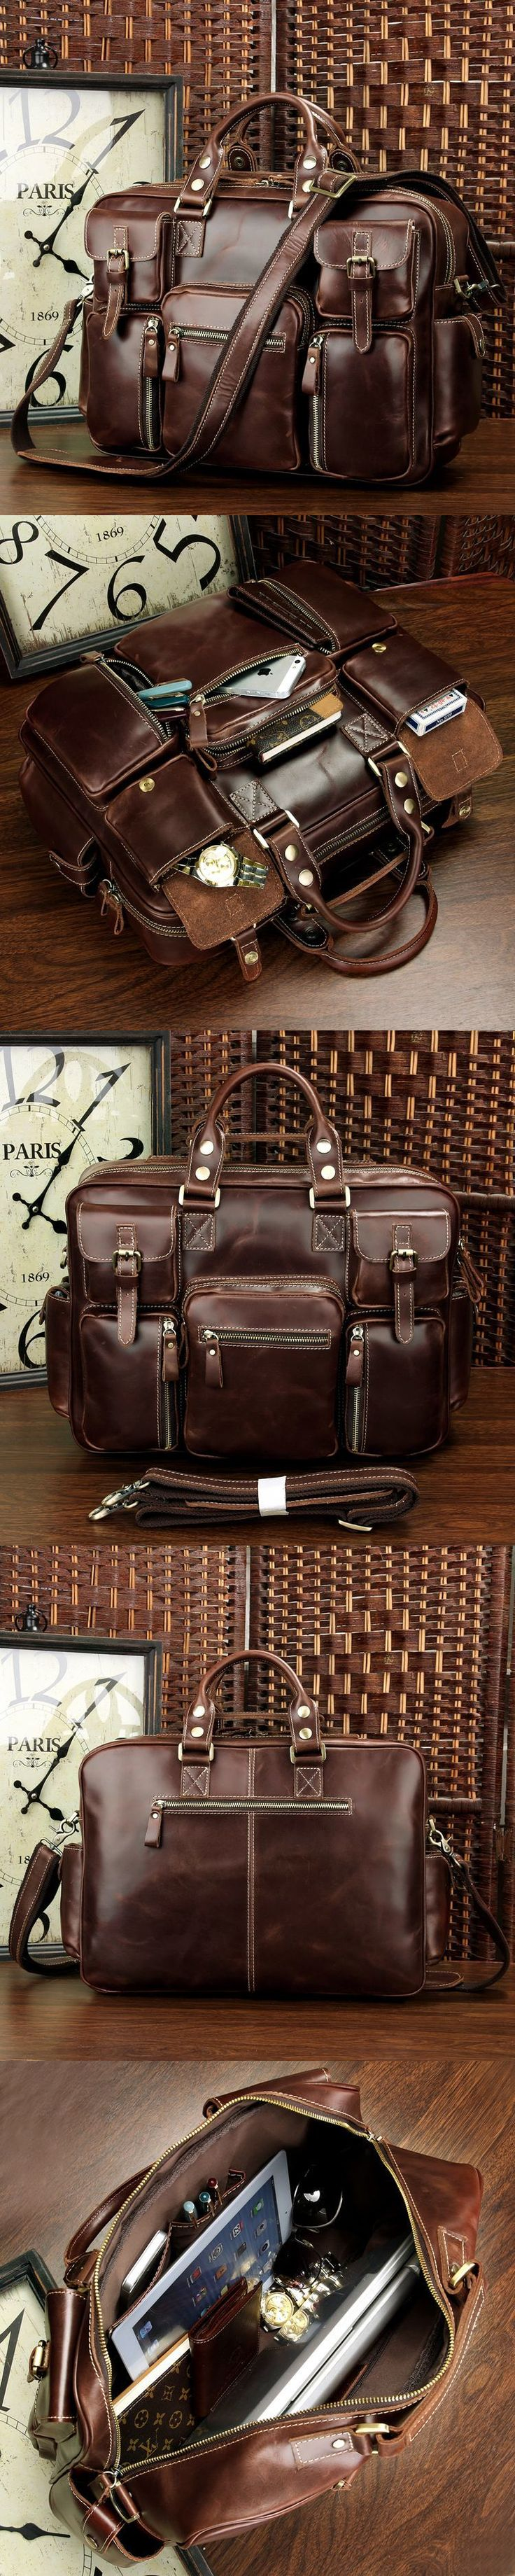 Leather Messenger Bag Vintage Handmade Antique Leather Business Travel Bag/Duffle Bag/Weekend Bag Leather Messenger Bag